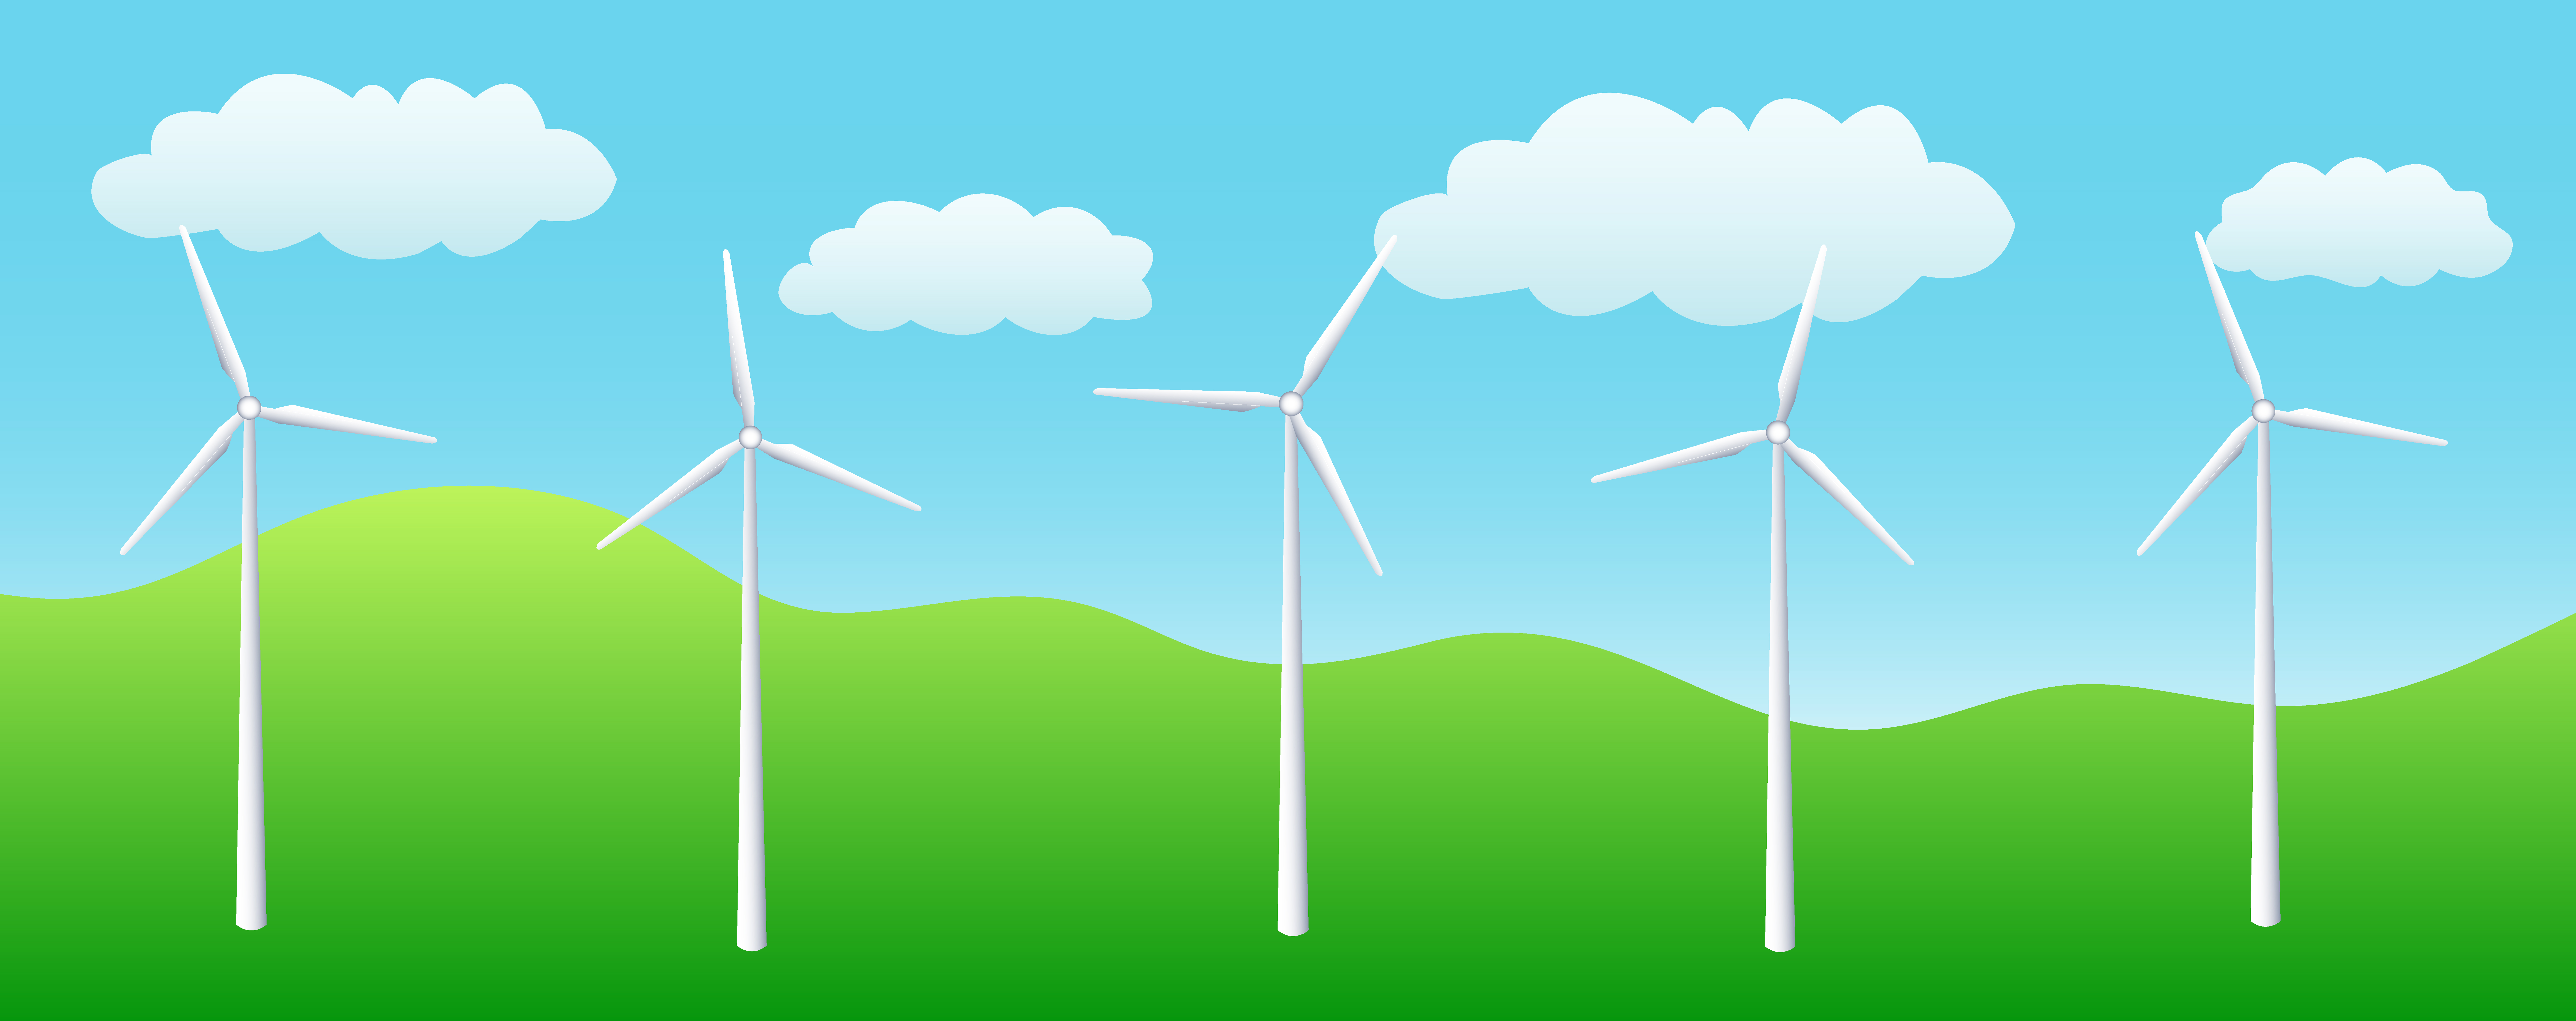 Wind Turbine clipart #3, Download drawings